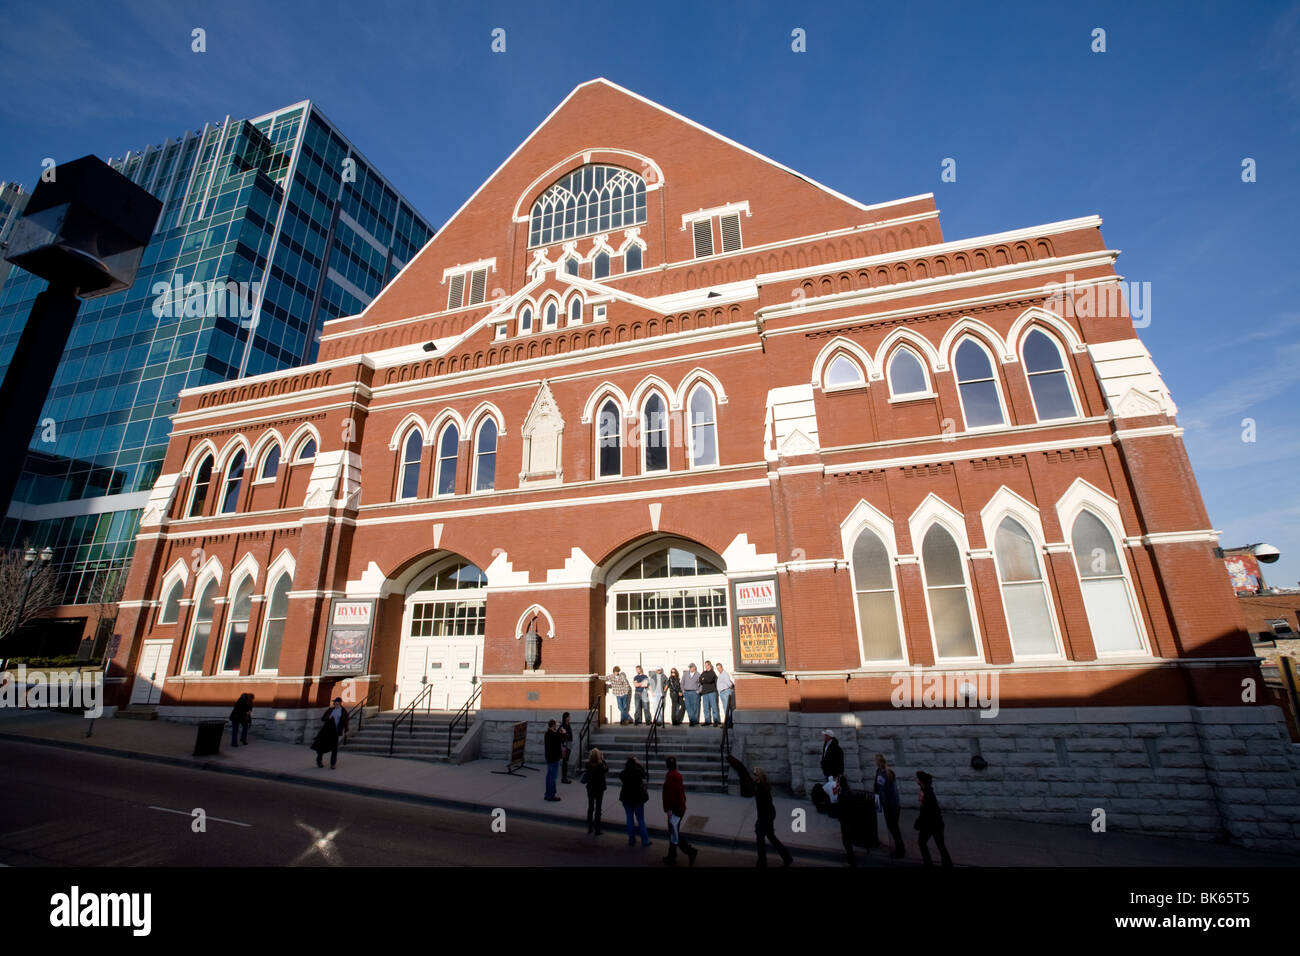 ryman auditorium, original site of grand ole opry, nashville stock